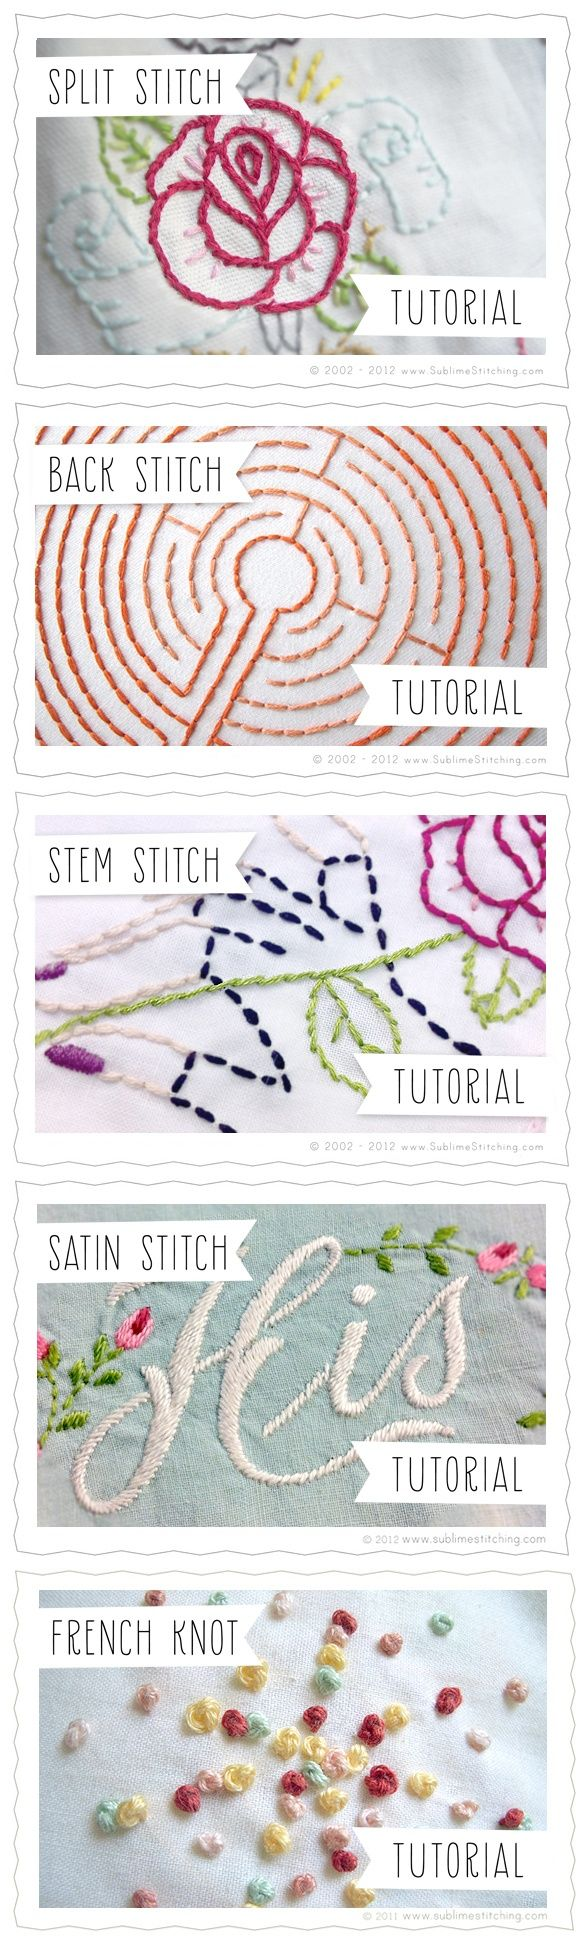 Embroidery Stitches Tutorials {Sublime Stitching} Split Stitch, Back Stitch, Stem Stitch, Satin Stitch, French Knot